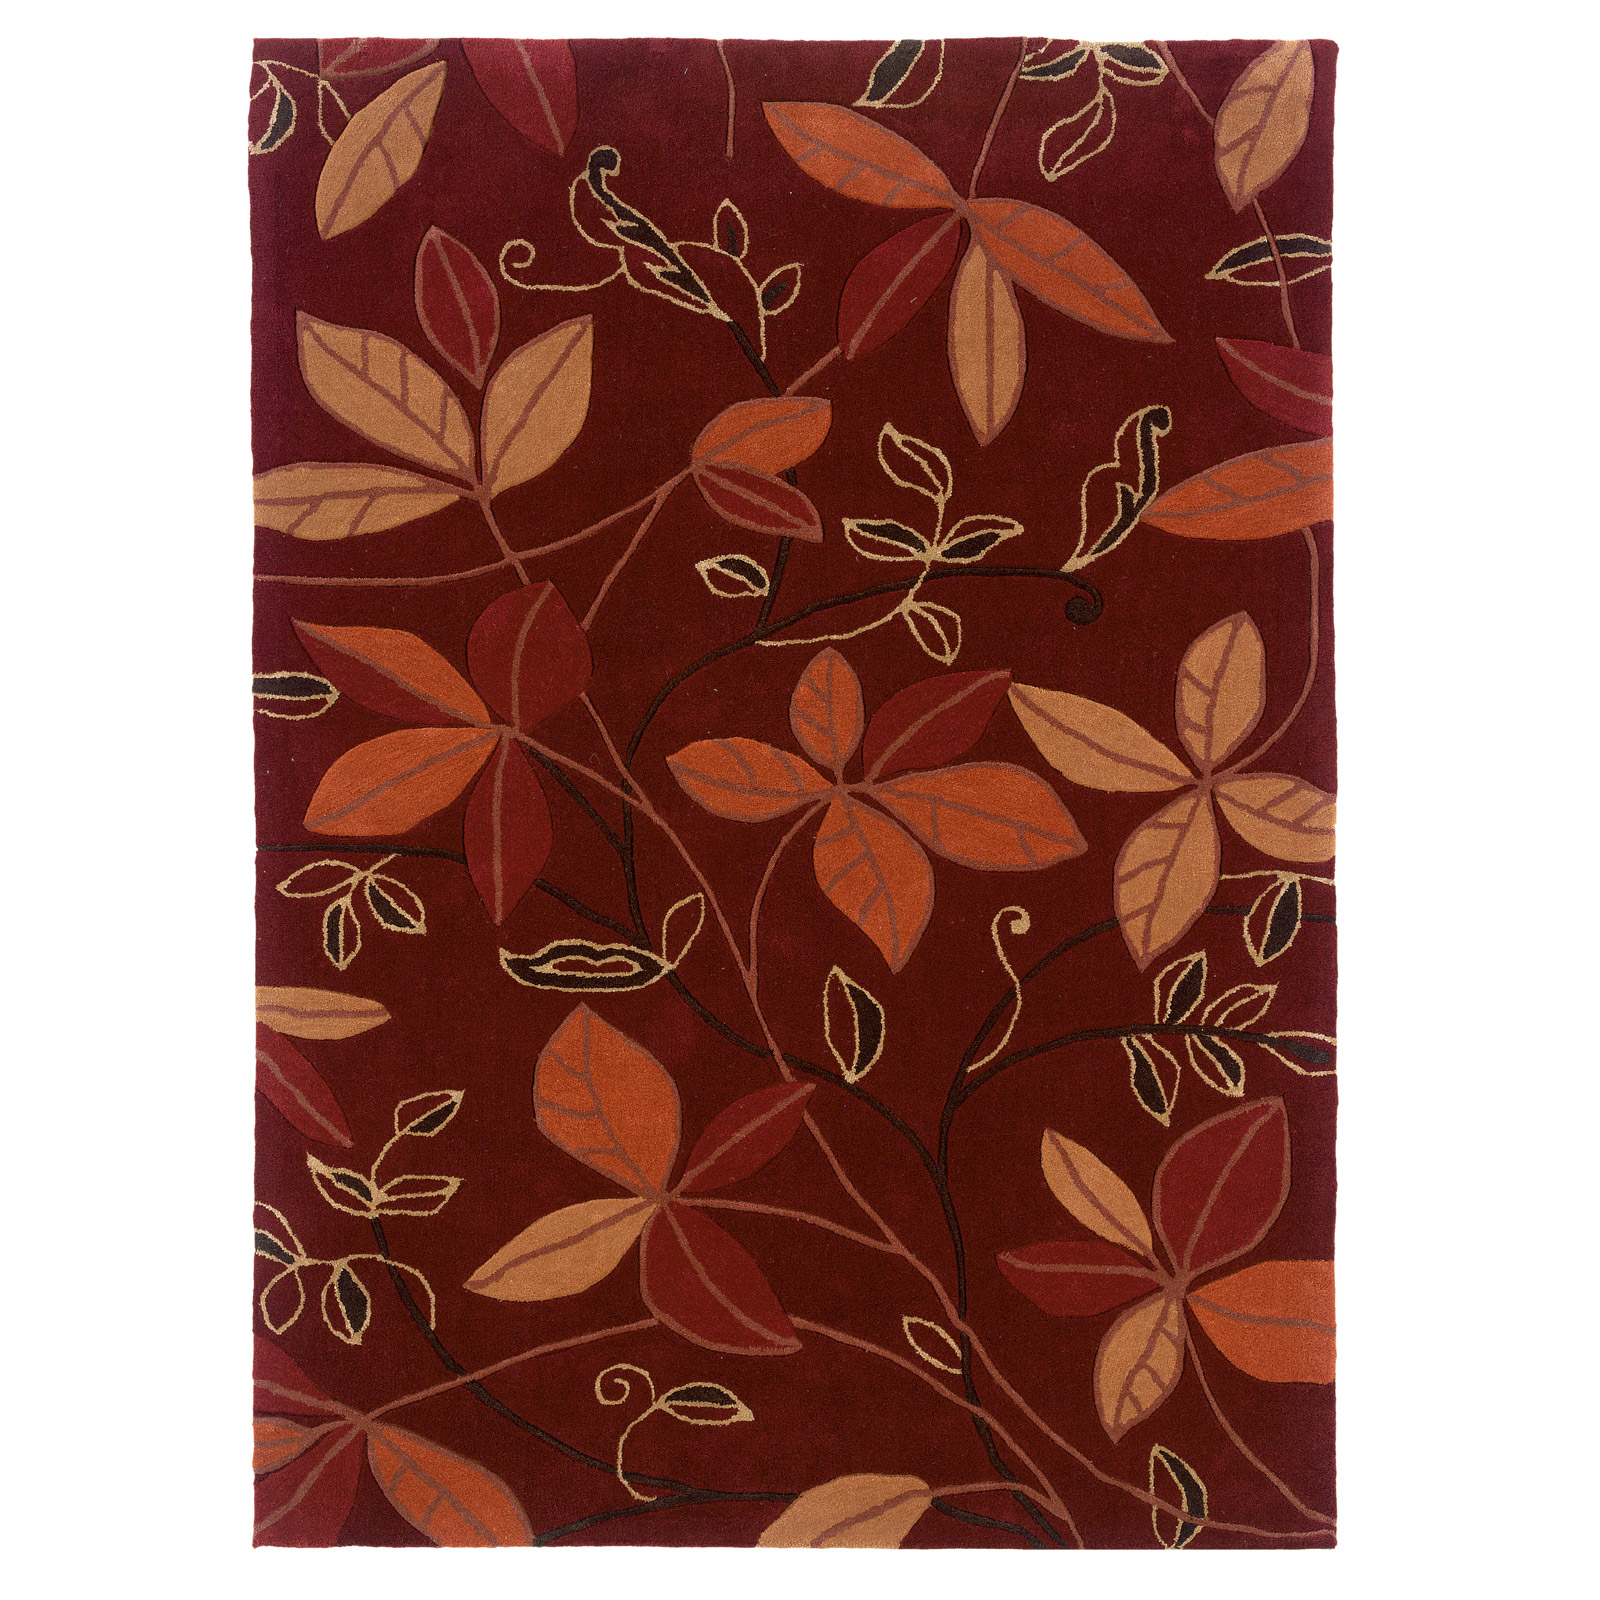 Trio Collection TAD0157 5x7 Area Rug By Linon In Patterned